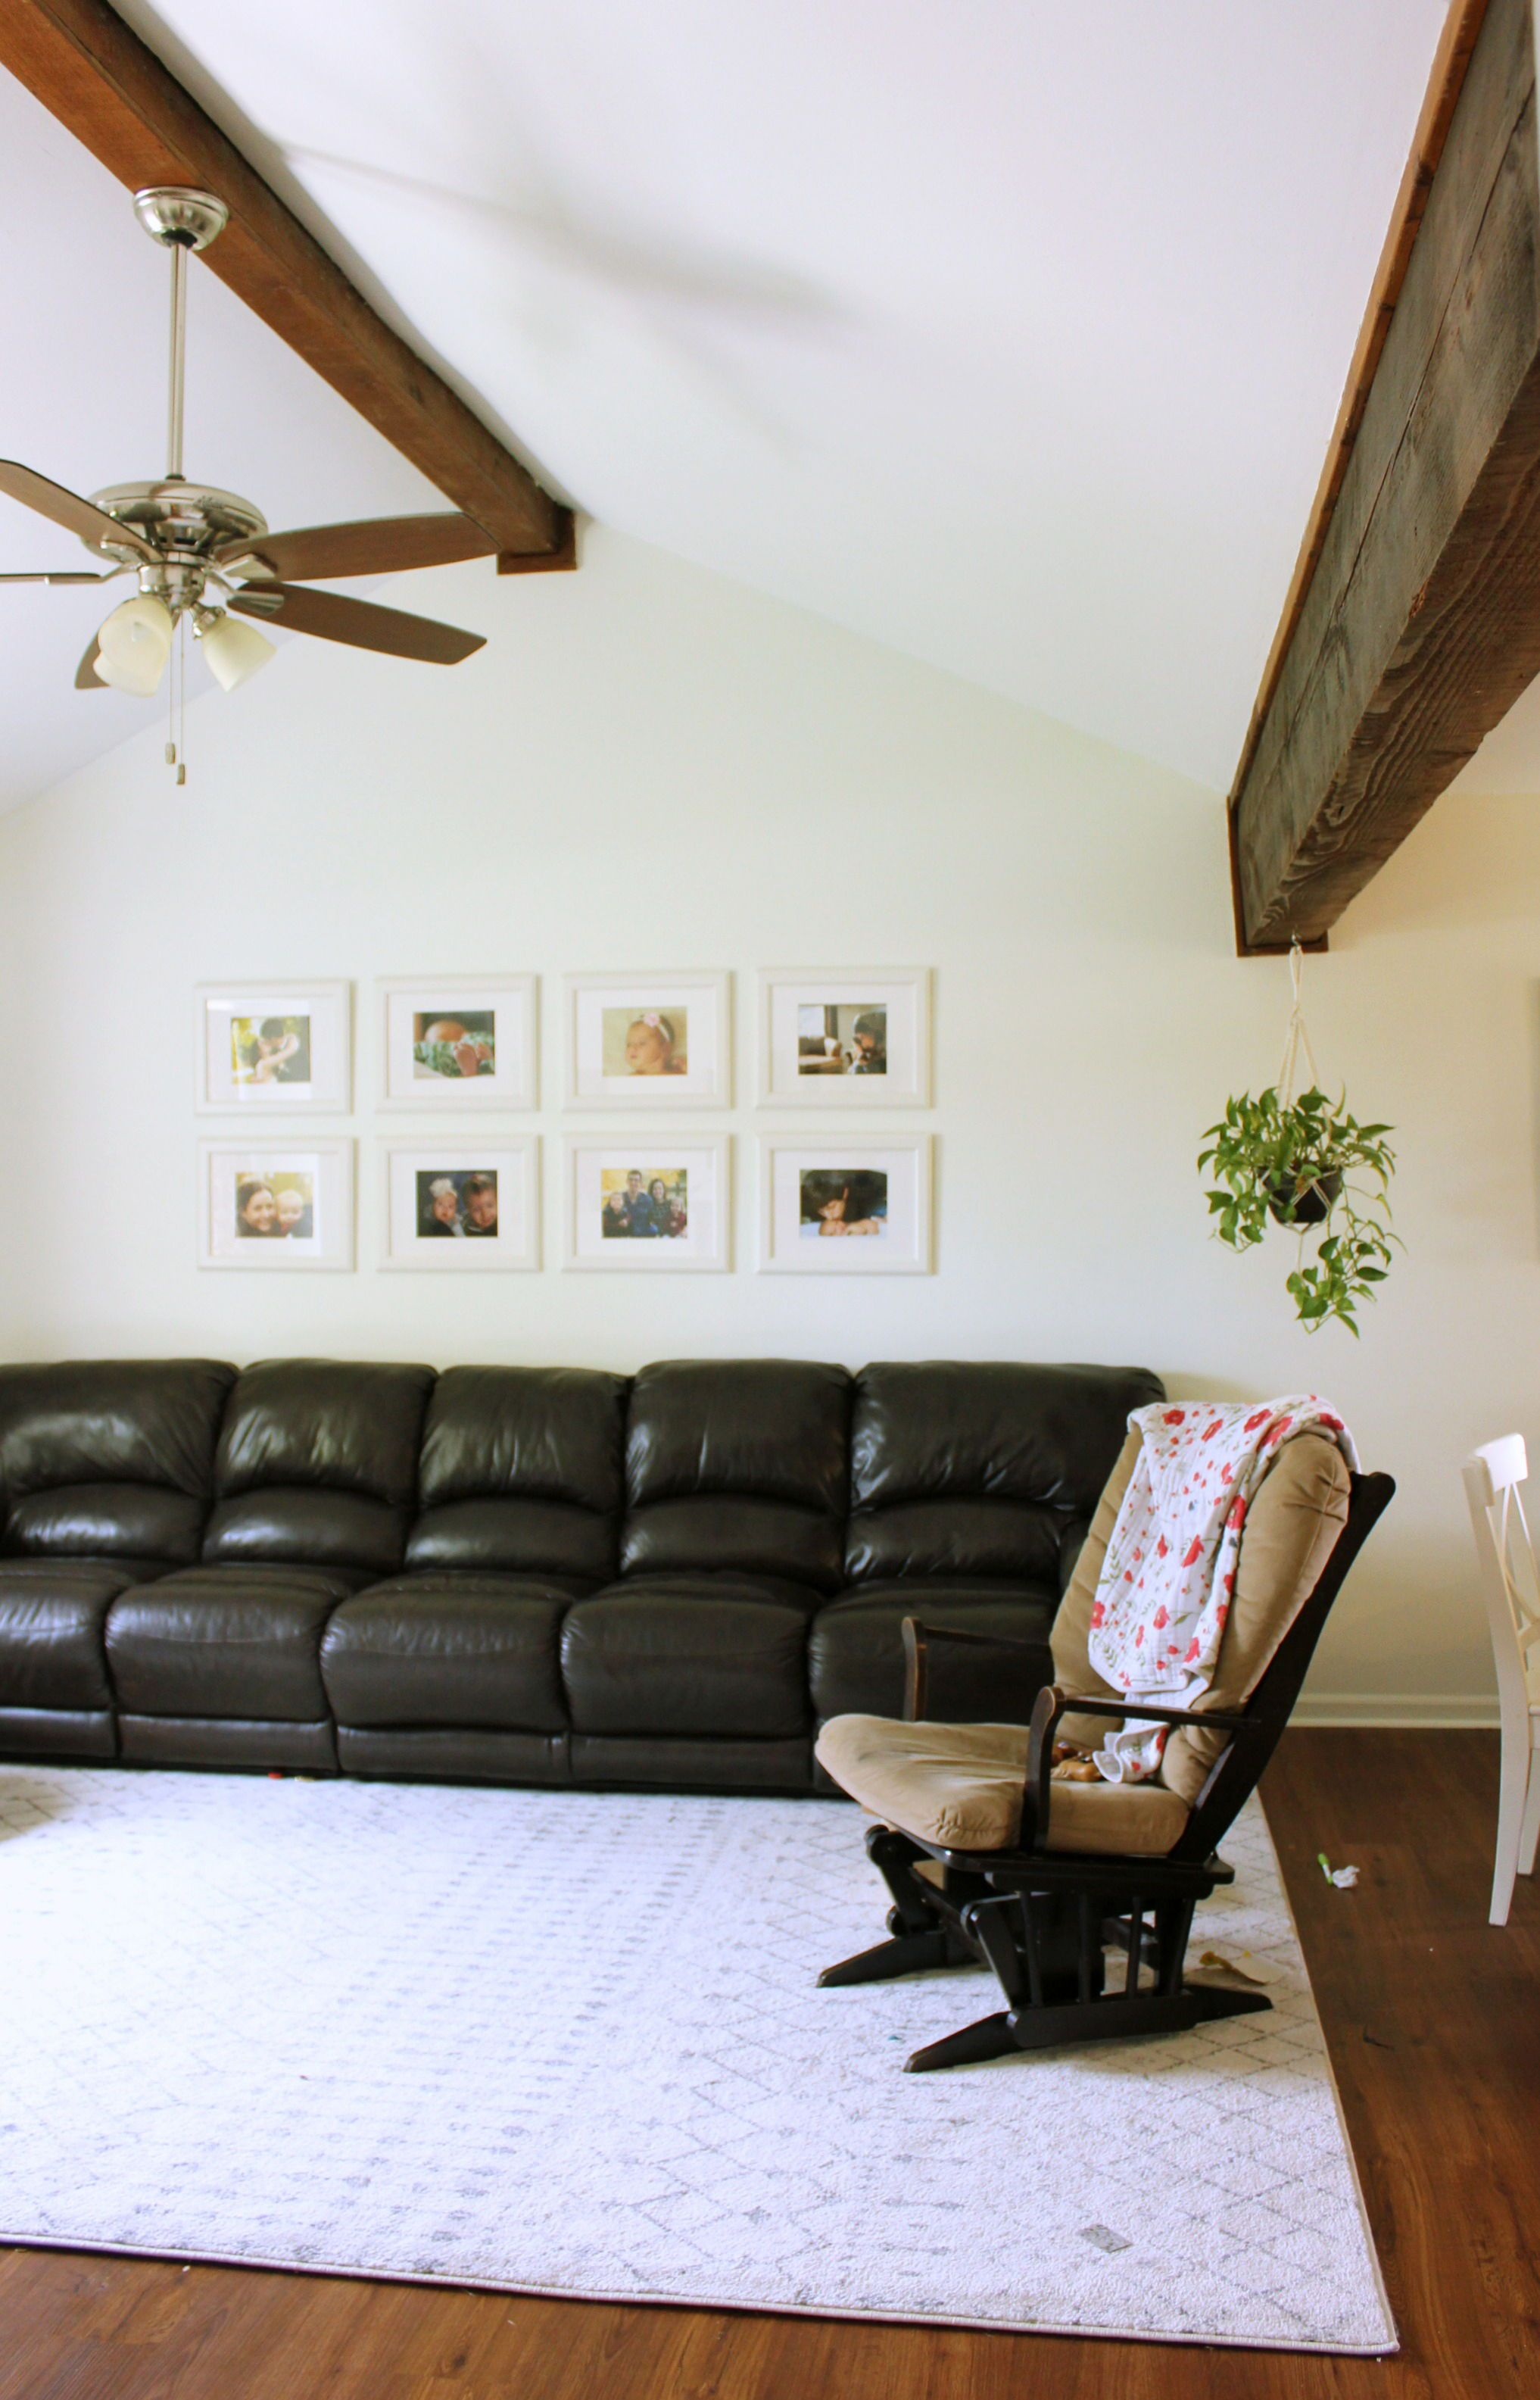 Decorating A Room Online: A Cozy Rug For The Living Room